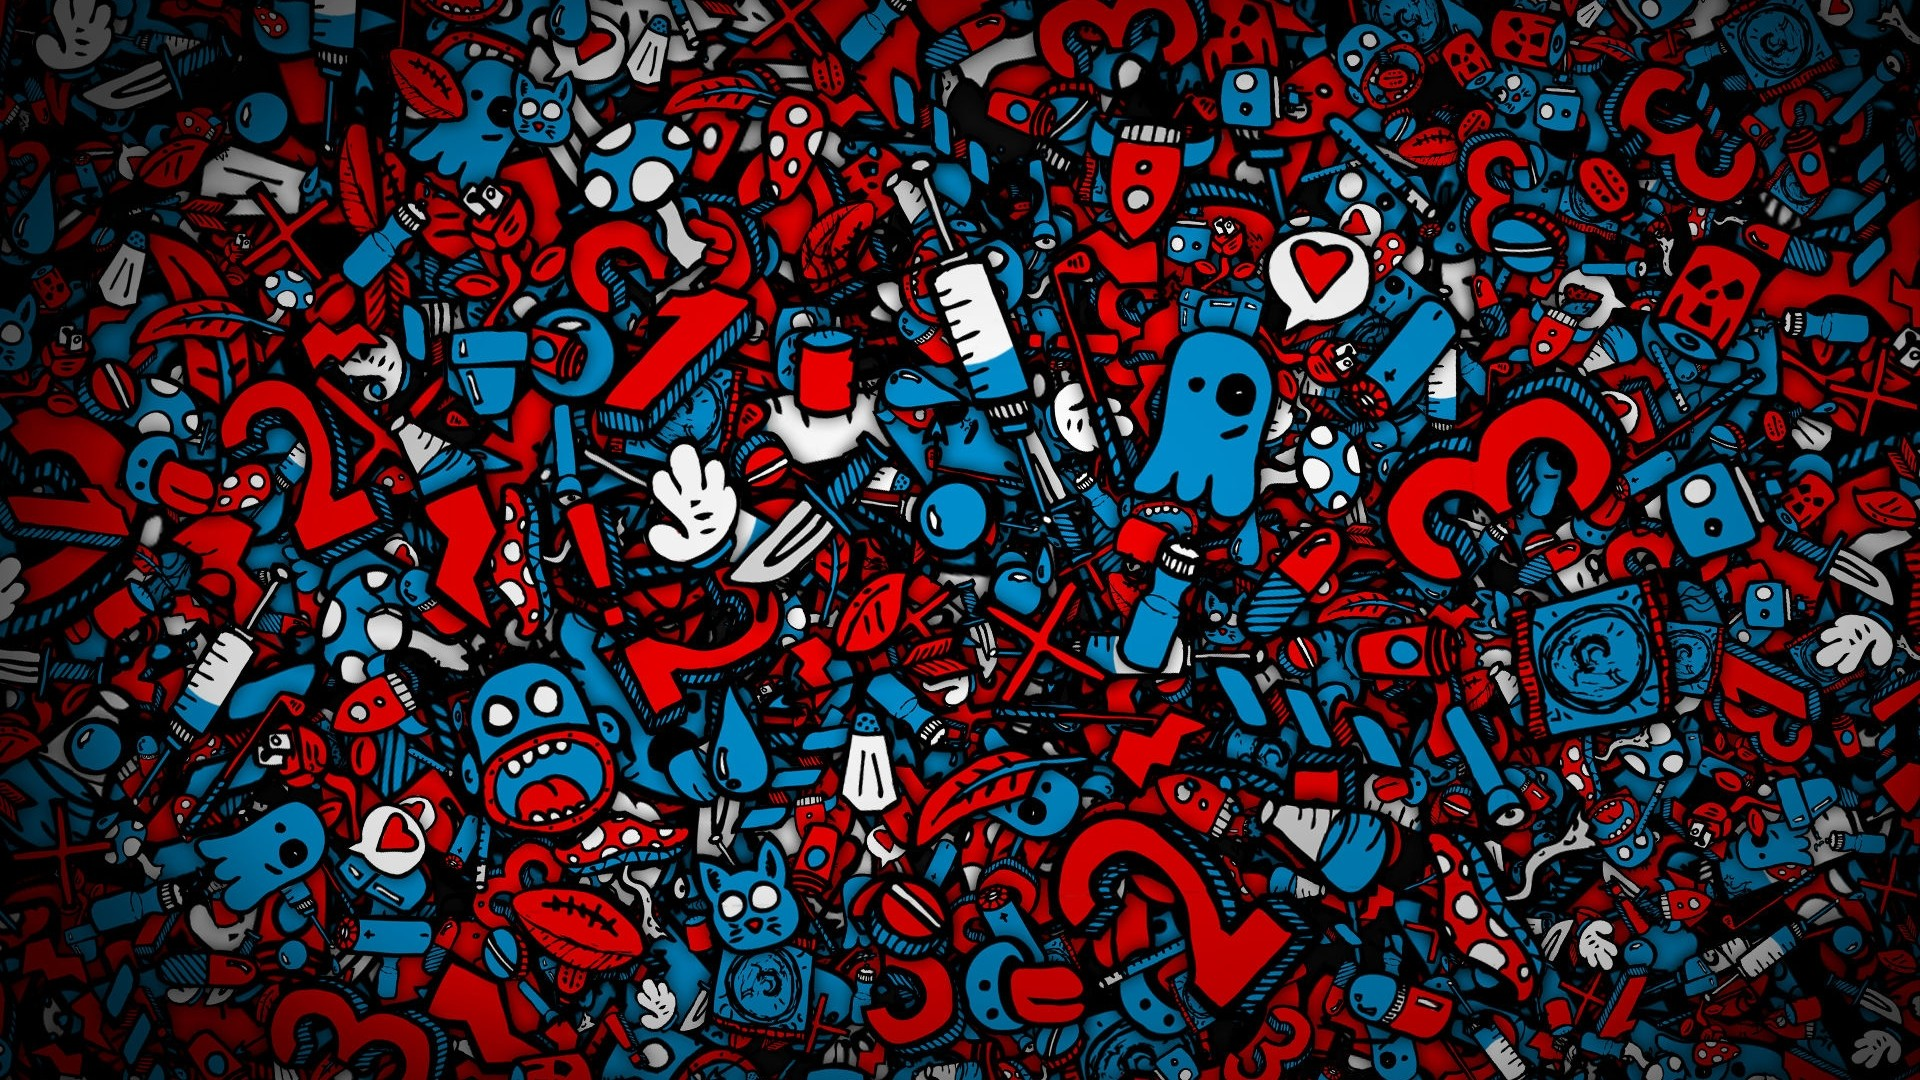 Red and Blue Collage Desktop Wallpaper